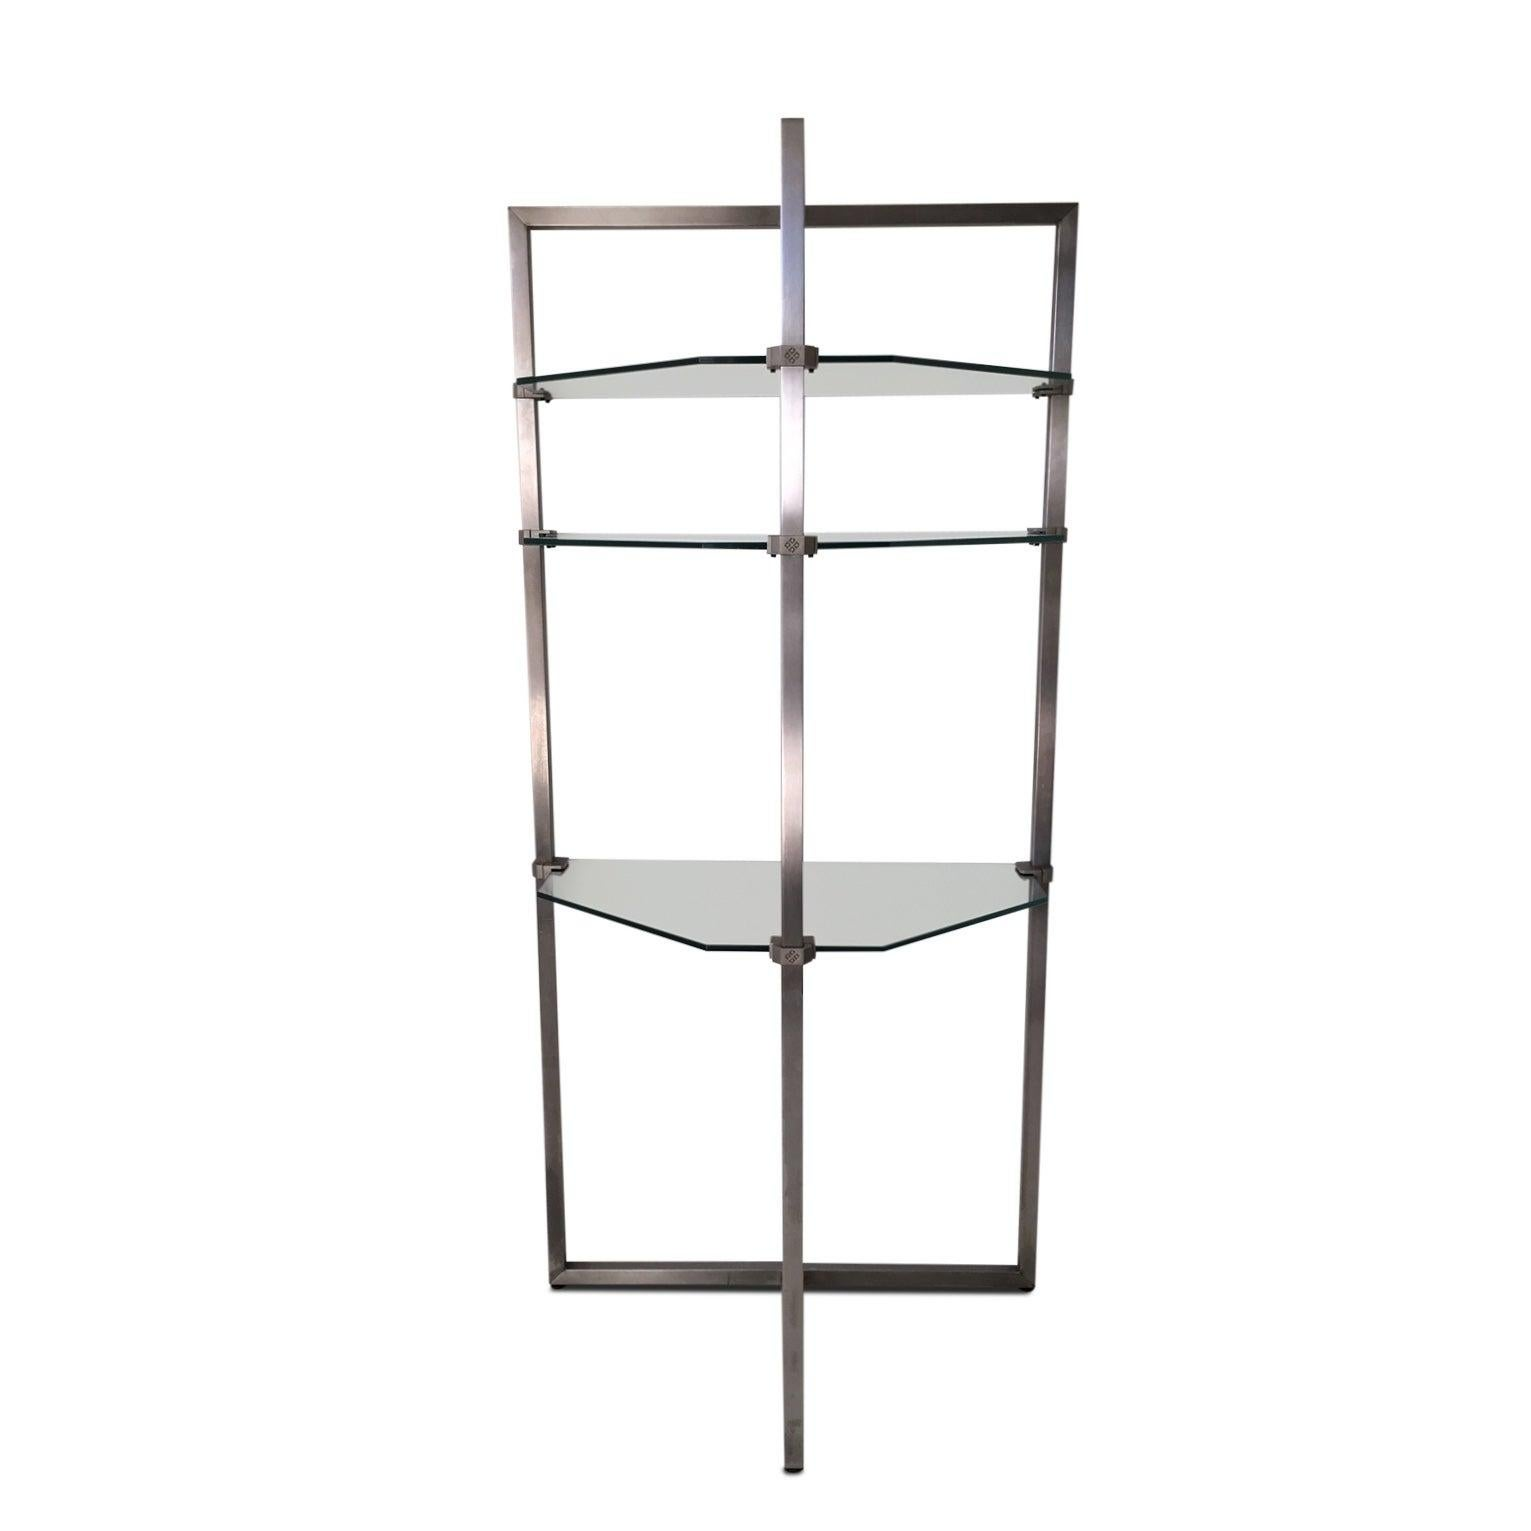 Stainless Steel and Glass Wall Shelf, Bookcase by Peter Ghyzy.  FINAL SALE